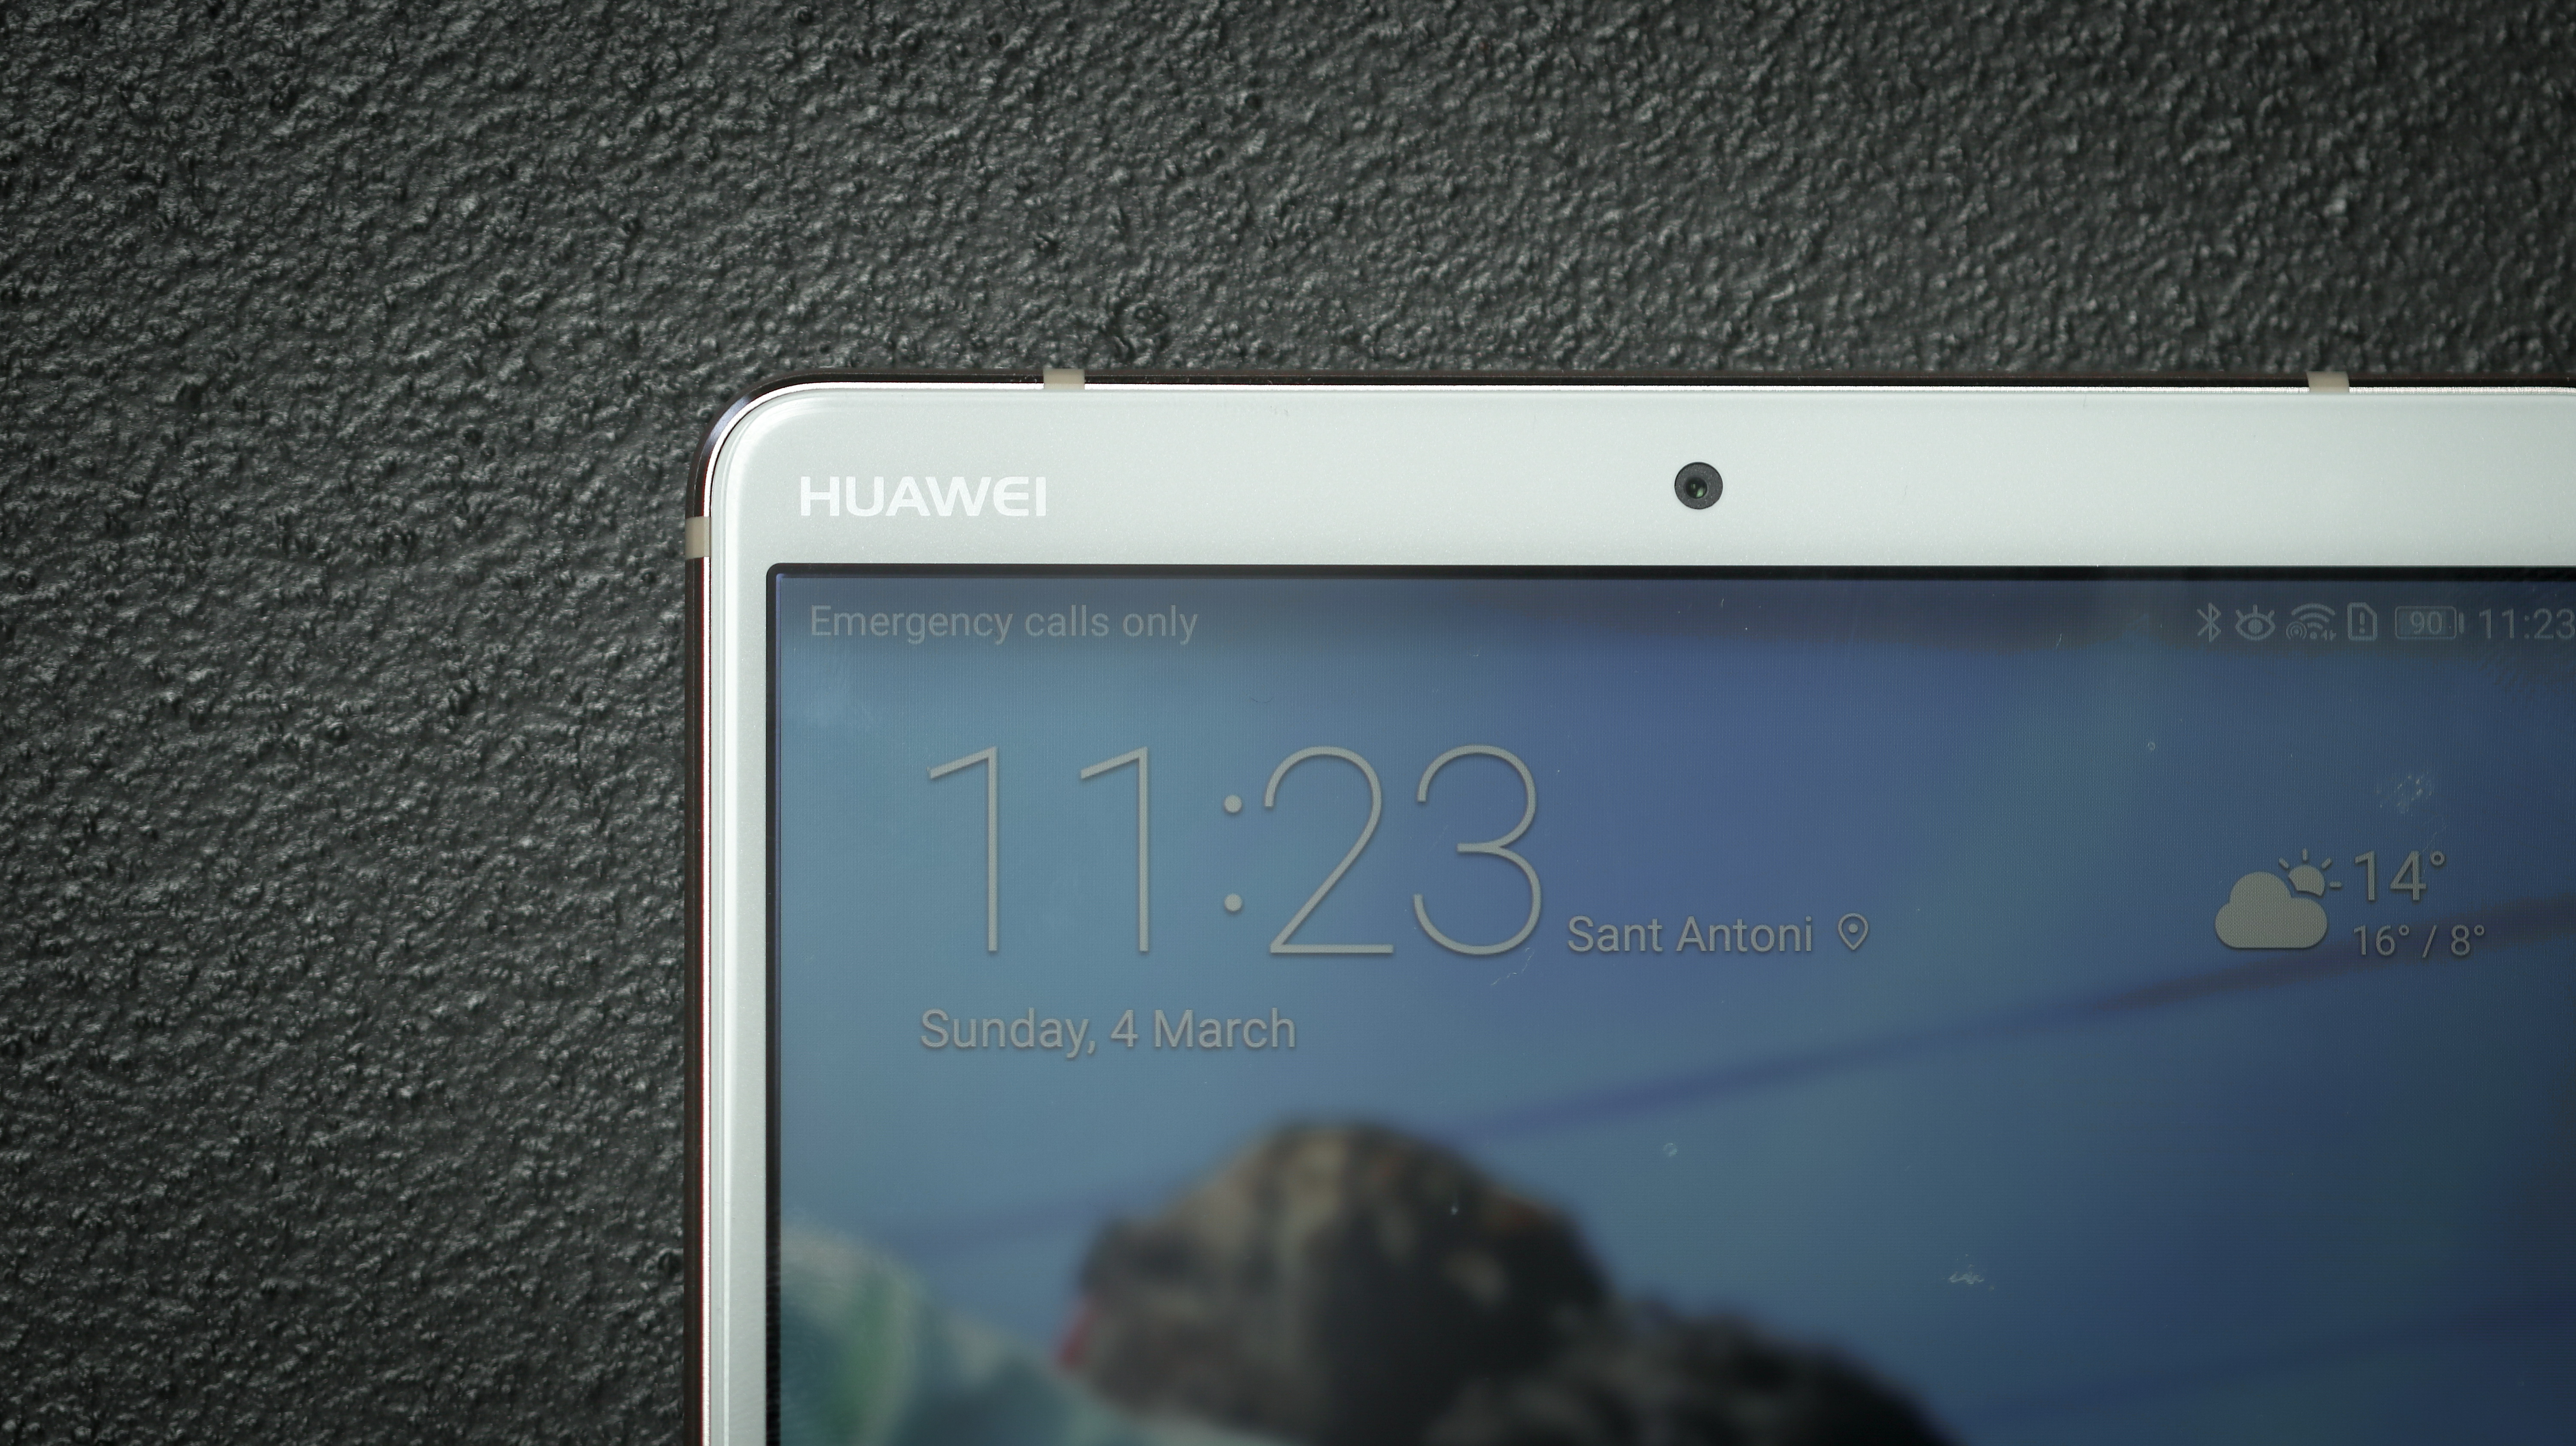 Huawei MediaPad M5 8 4 review | TechRadar